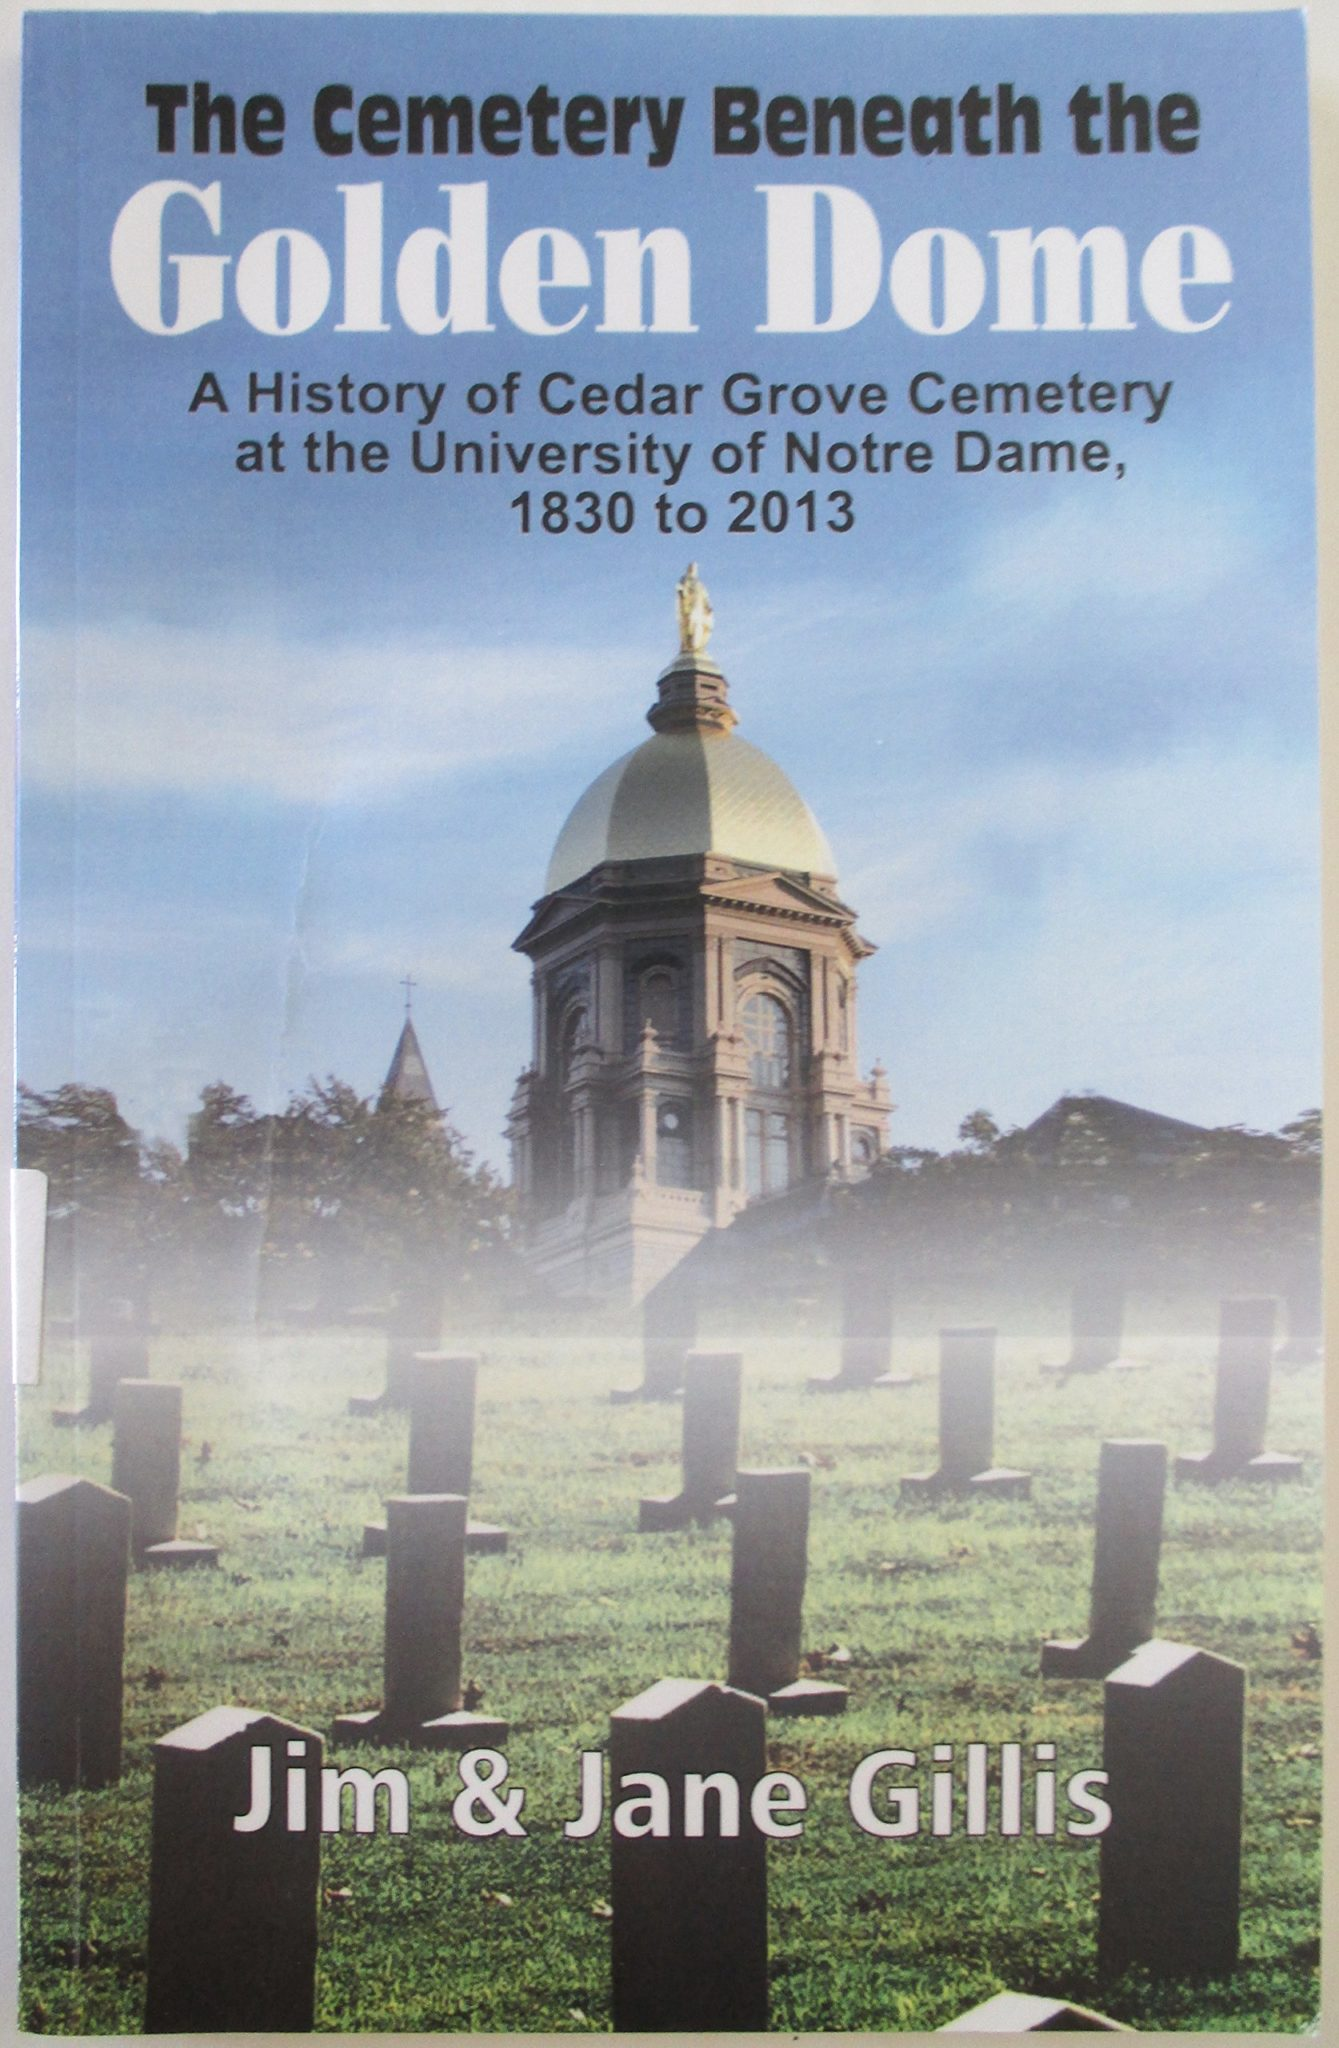 The Cemetery Beneath the Golden Dome